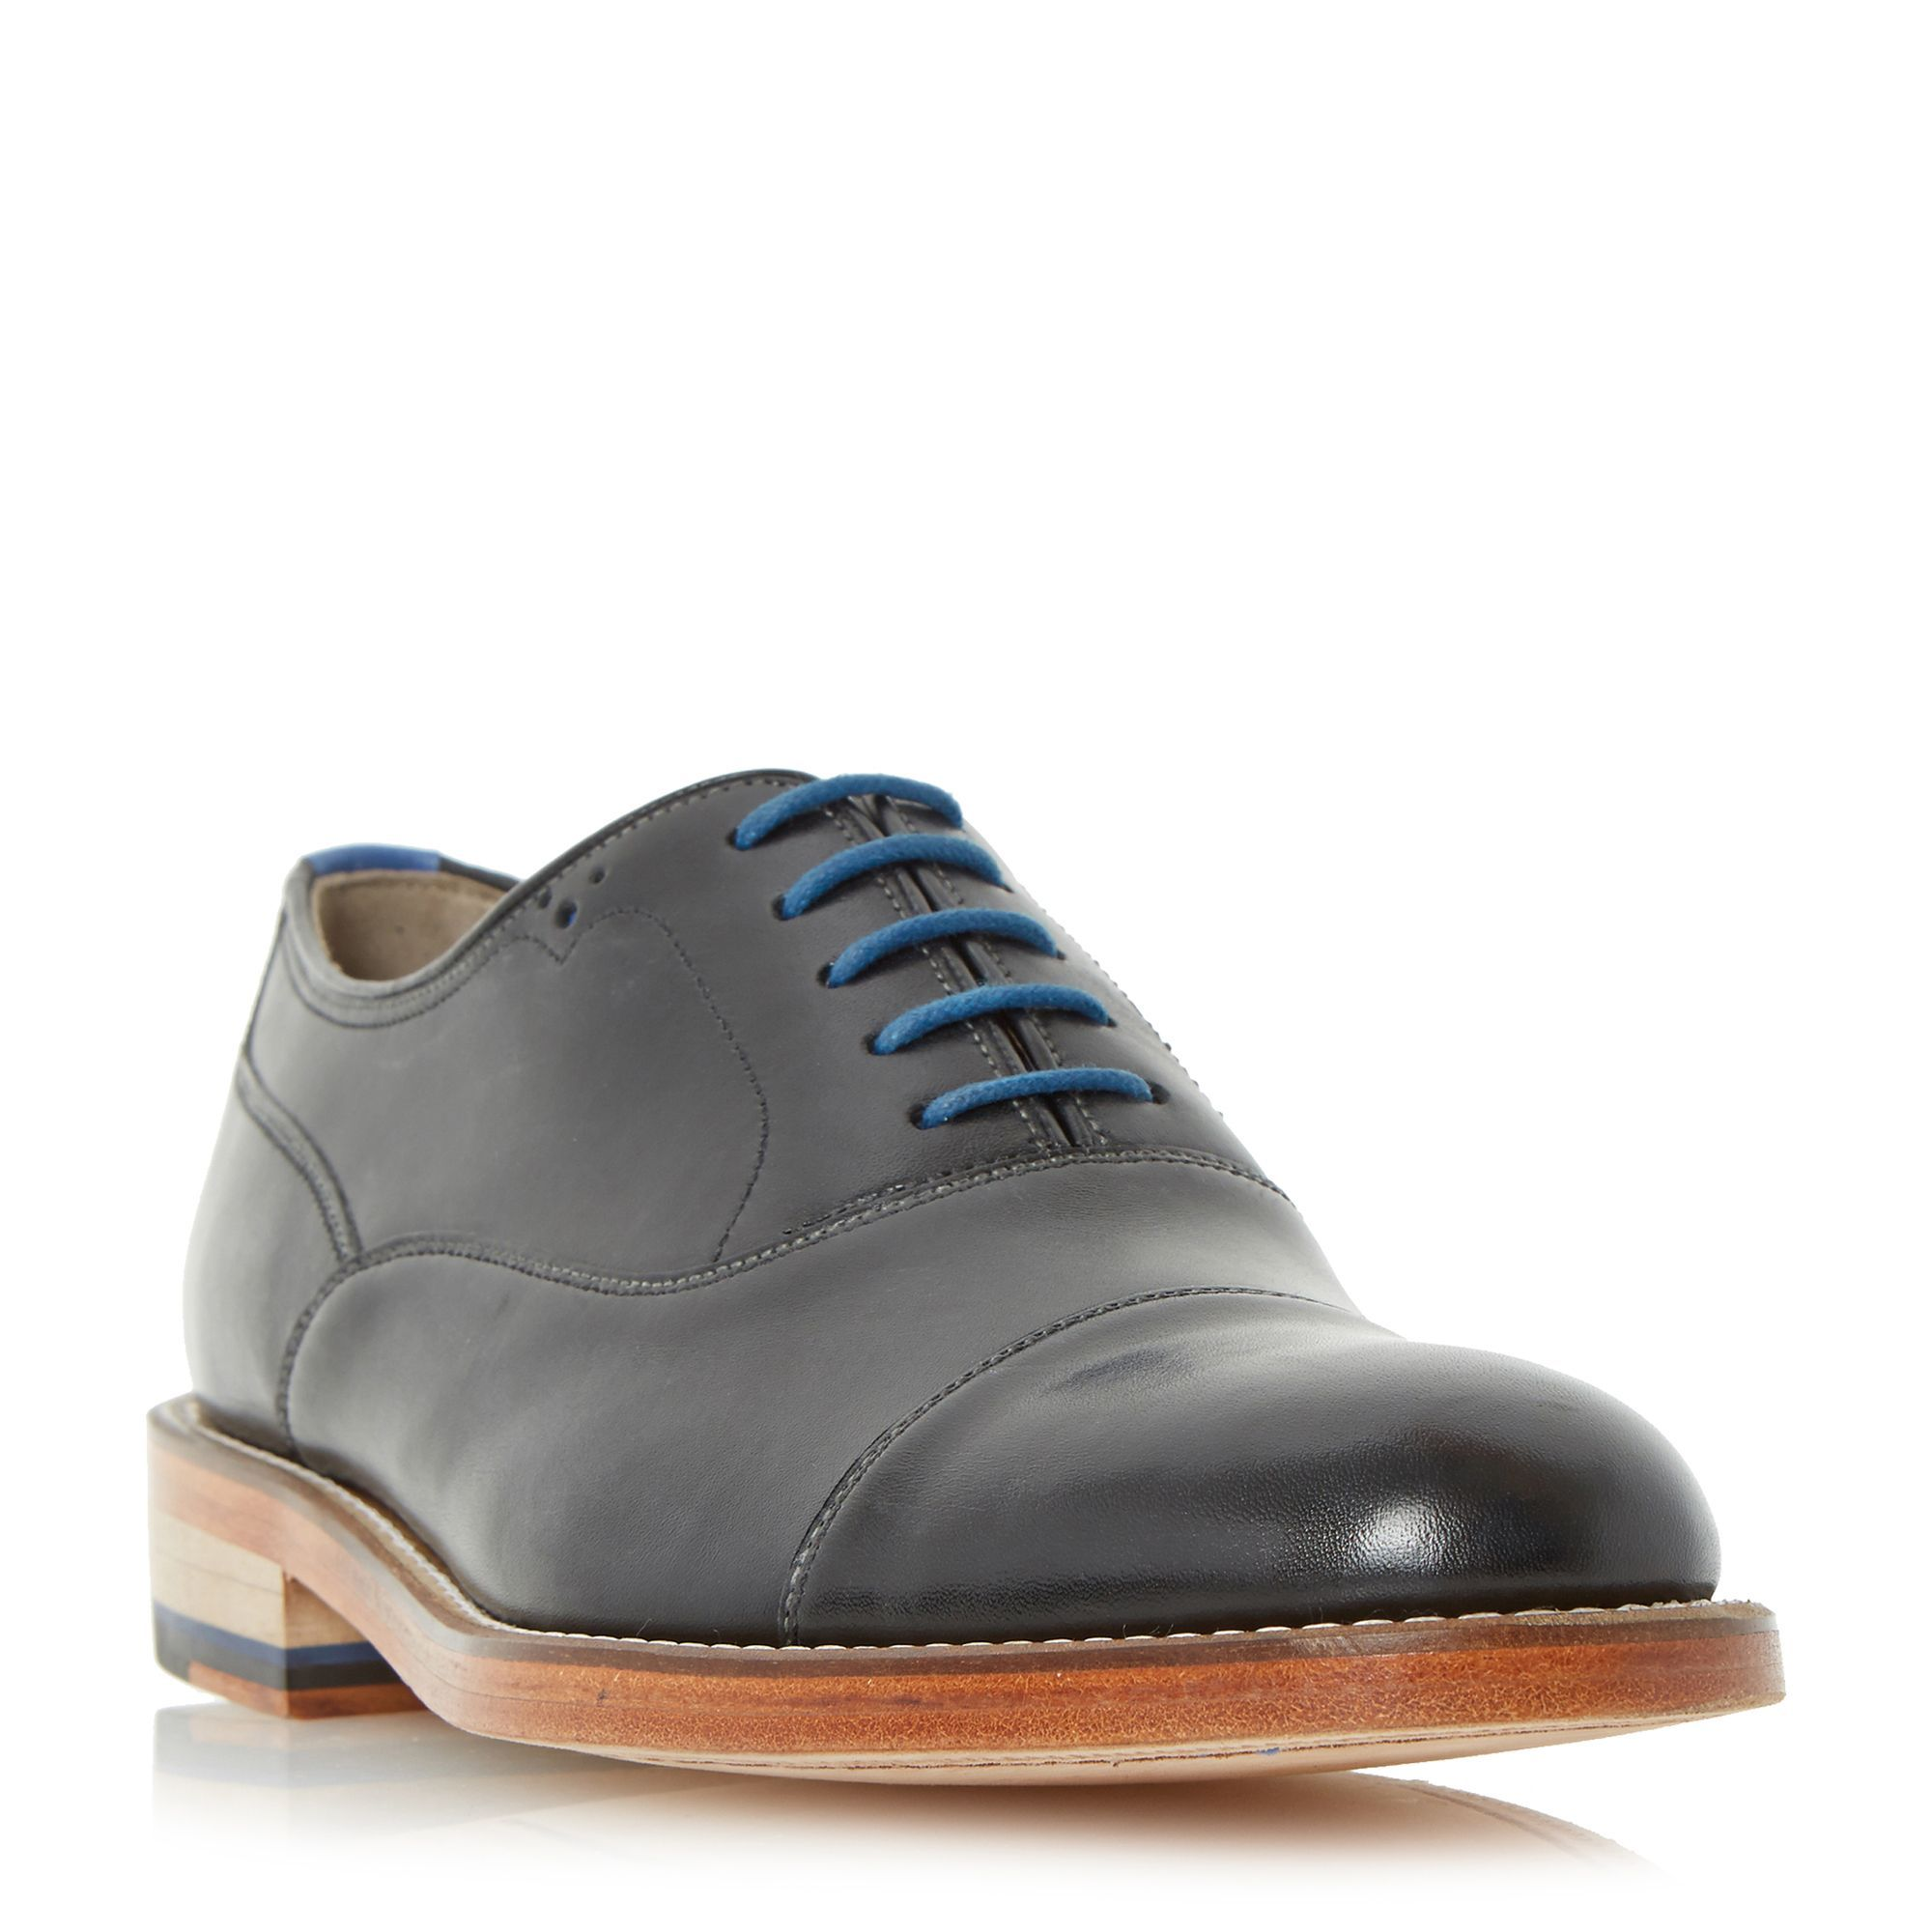 Oliver Sweeney Lupton toecap leather oxford shoes, Black